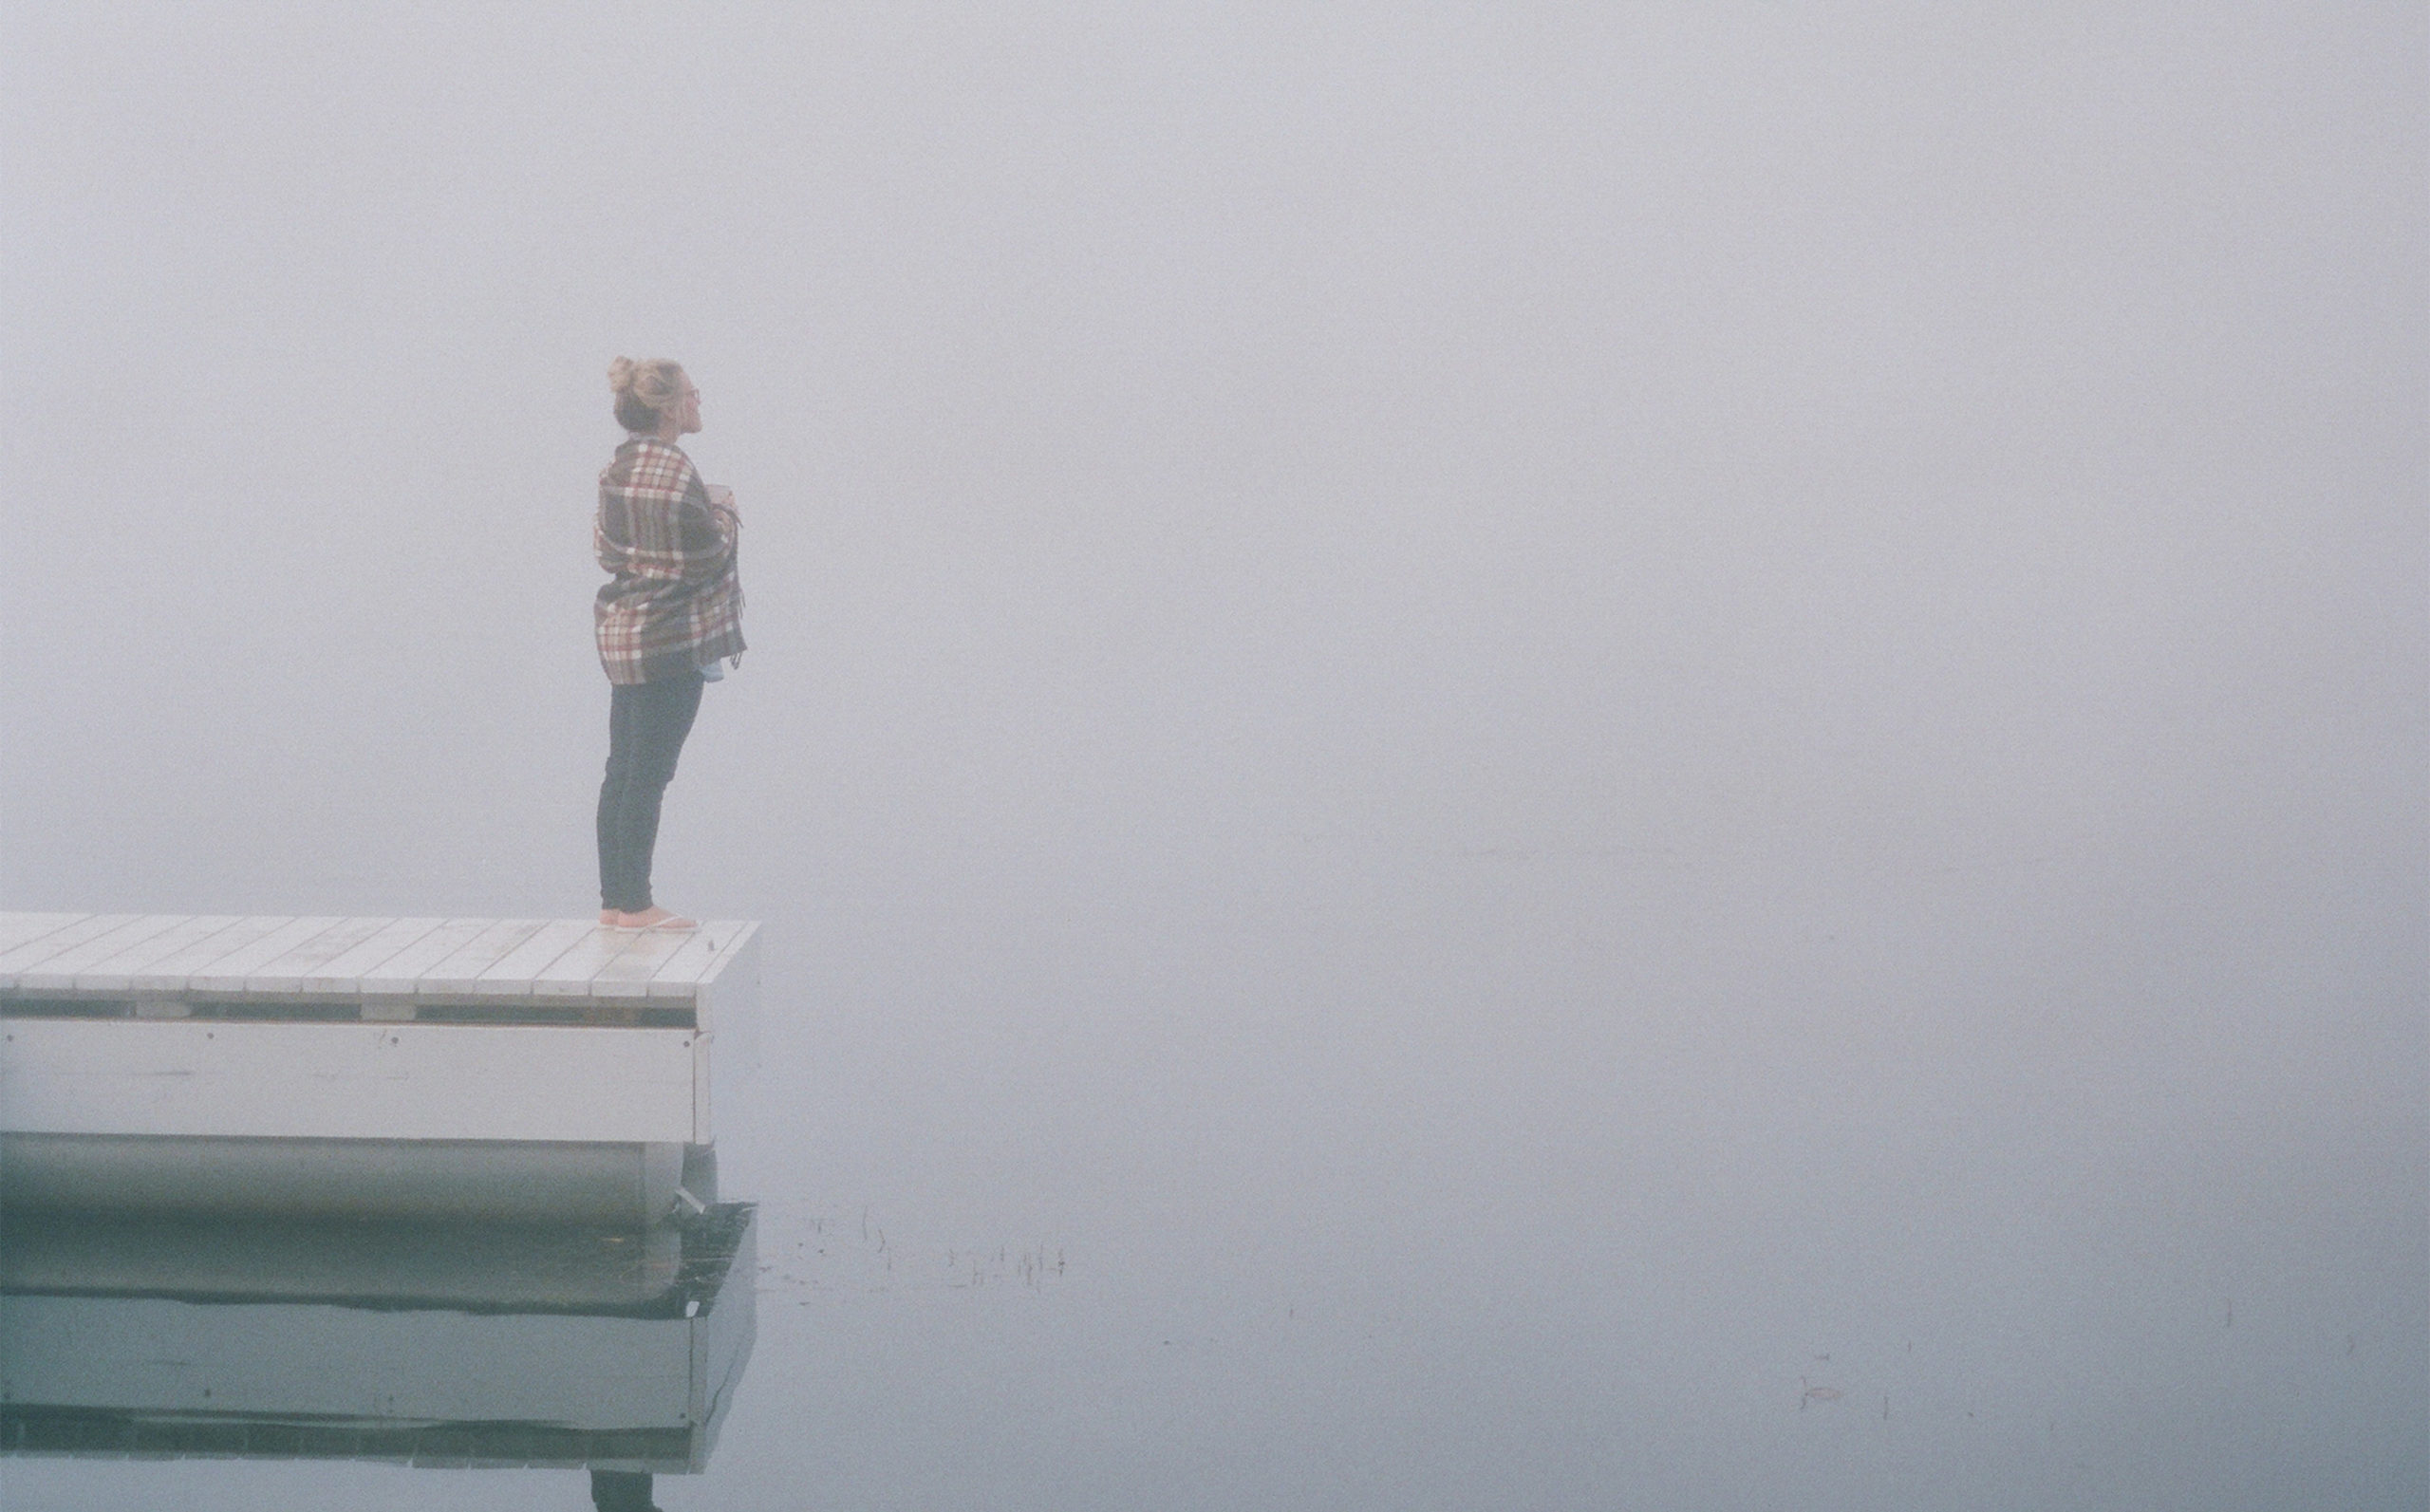 A woman standing at the end of a pier in fog.